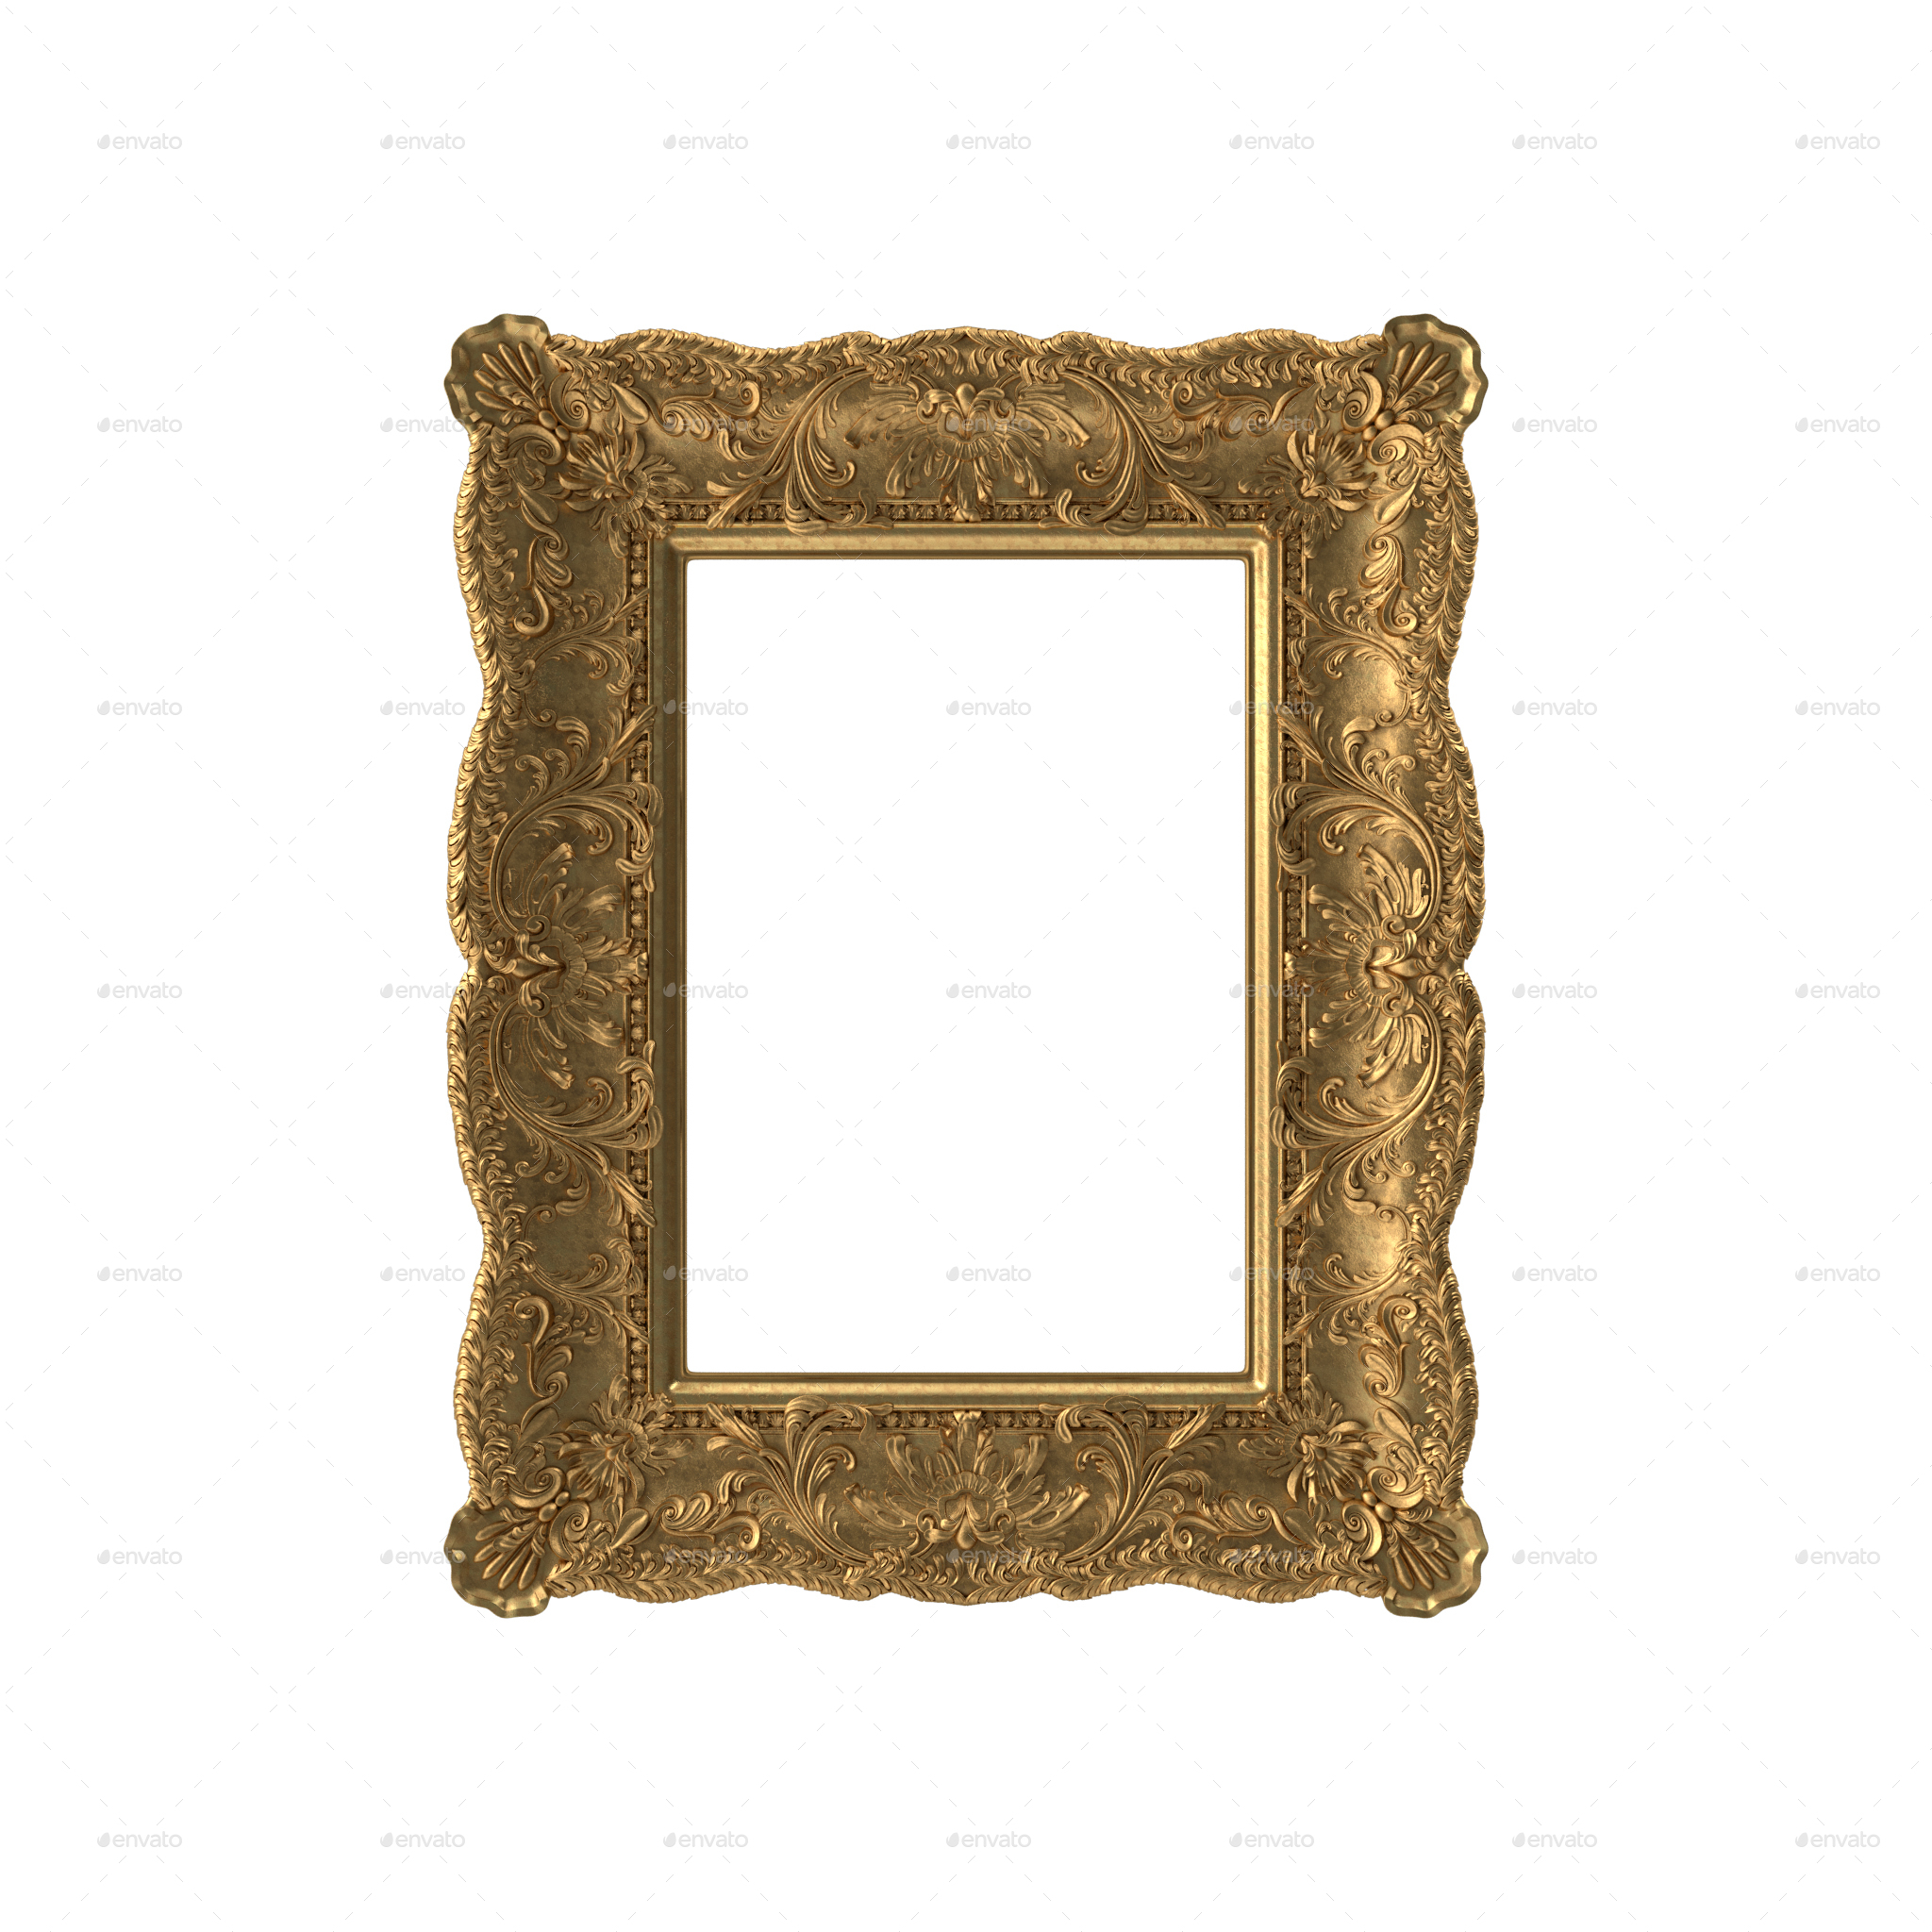 Realistic Photo / Picture Frames PNG Set by nashetyakoub | GraphicRiver